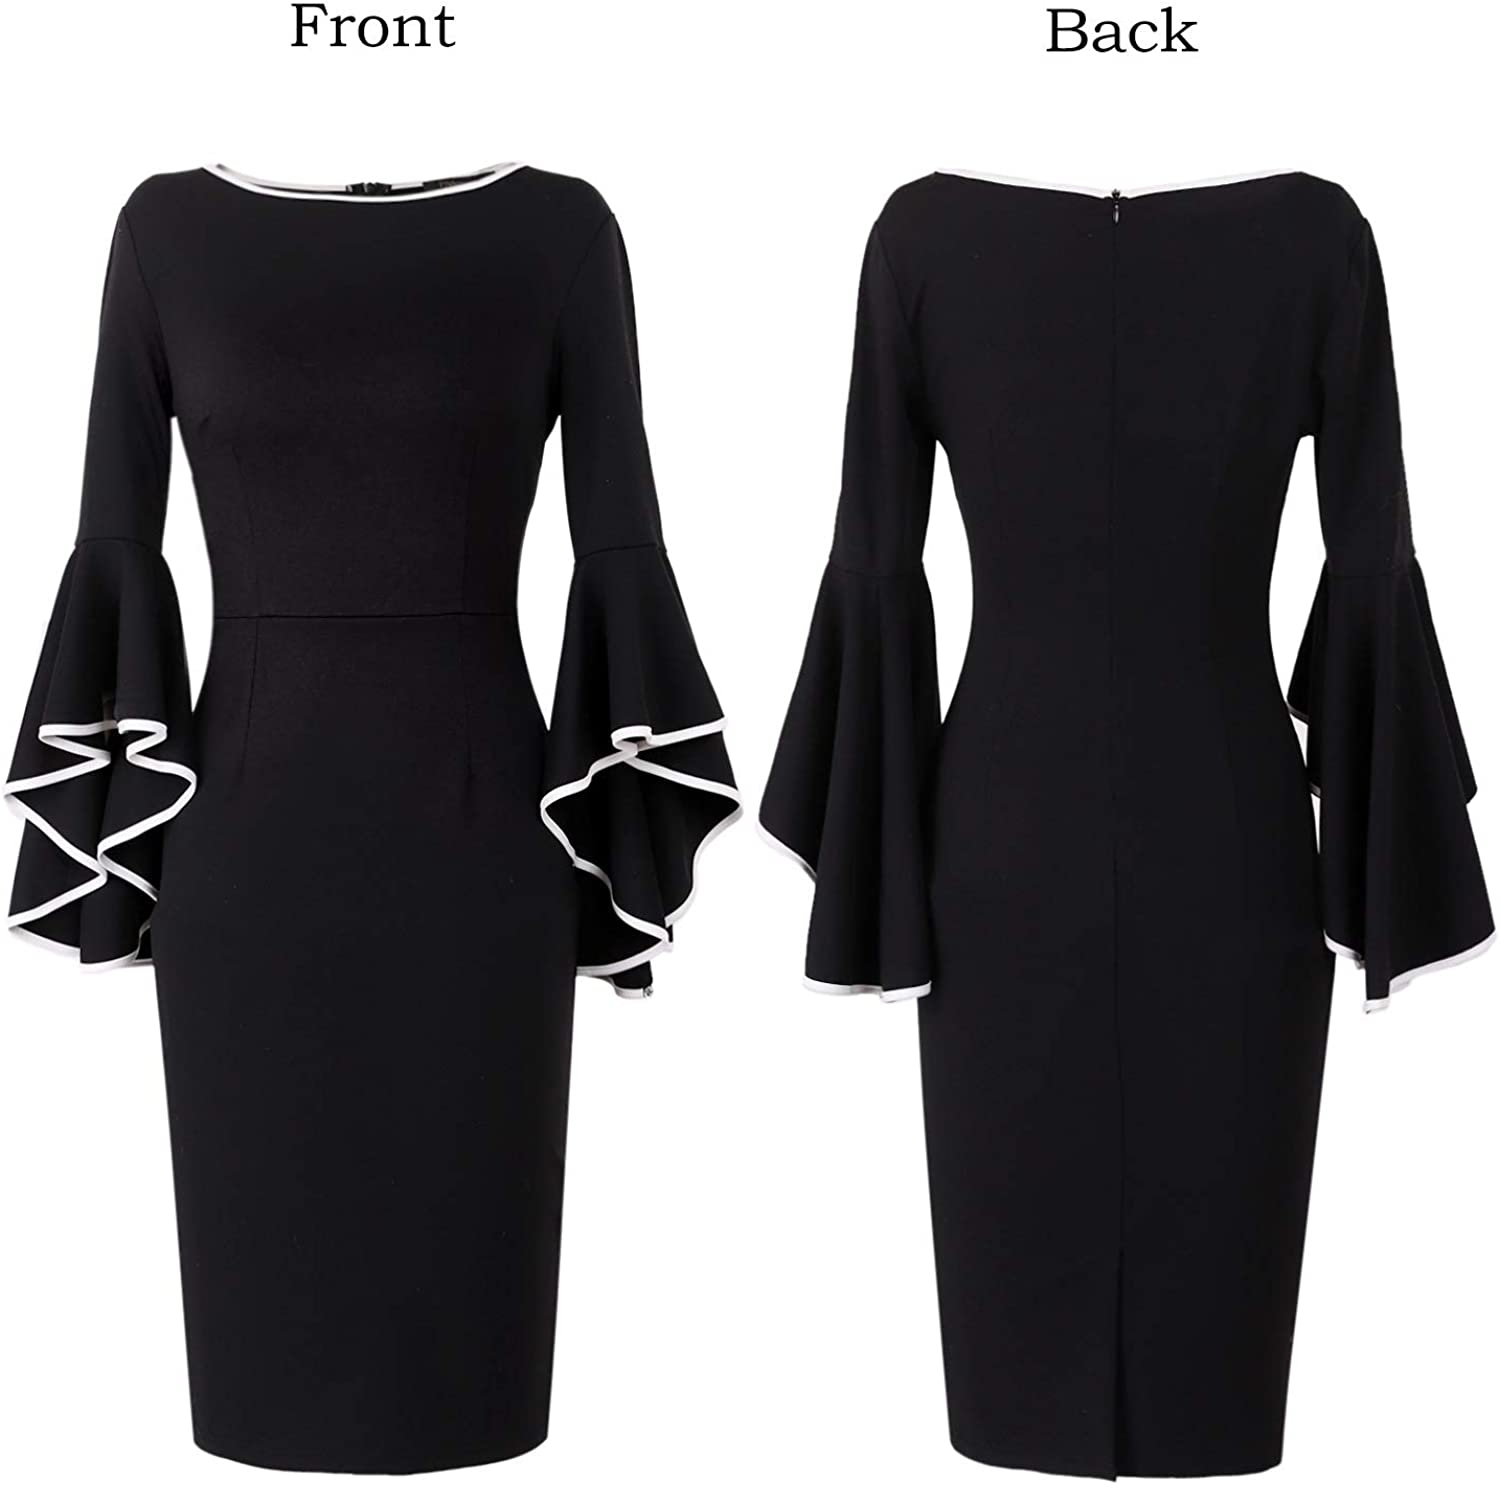 VFSHOW Womens Elegant Ruffle Bell Sleeve Business Cocktail Party Bodycon Pencil Dress